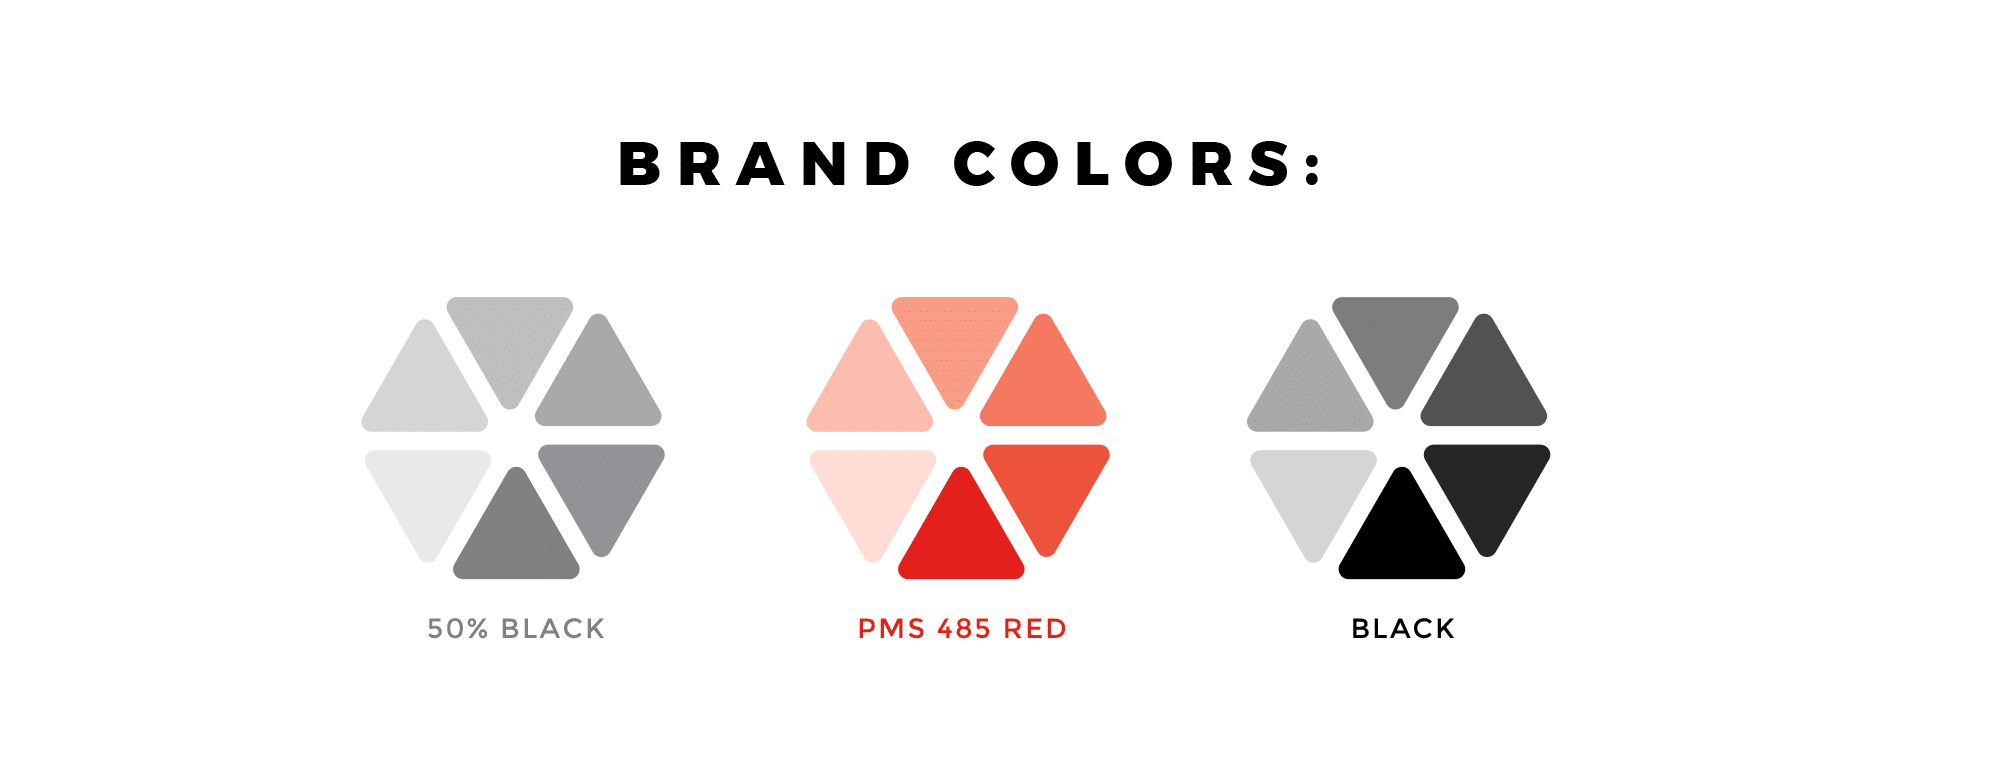 AS brand colors